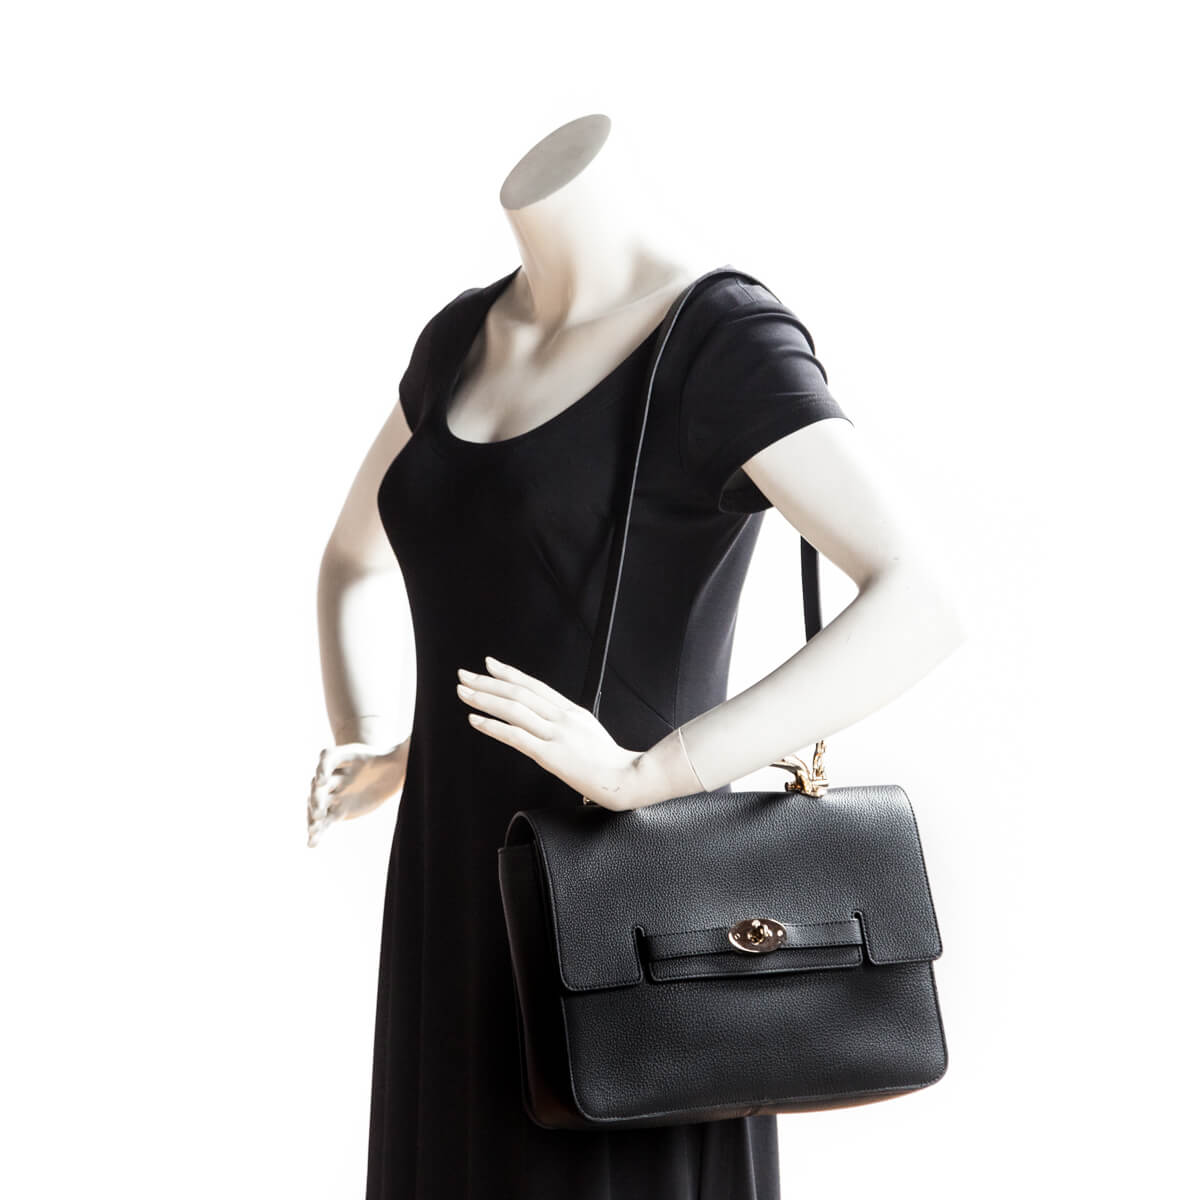 433fae581942 ... Mulberry Black Grainy Calfskin Large Bayswater - LOVE that BAG - Preowned  Authentic Designer Handbags